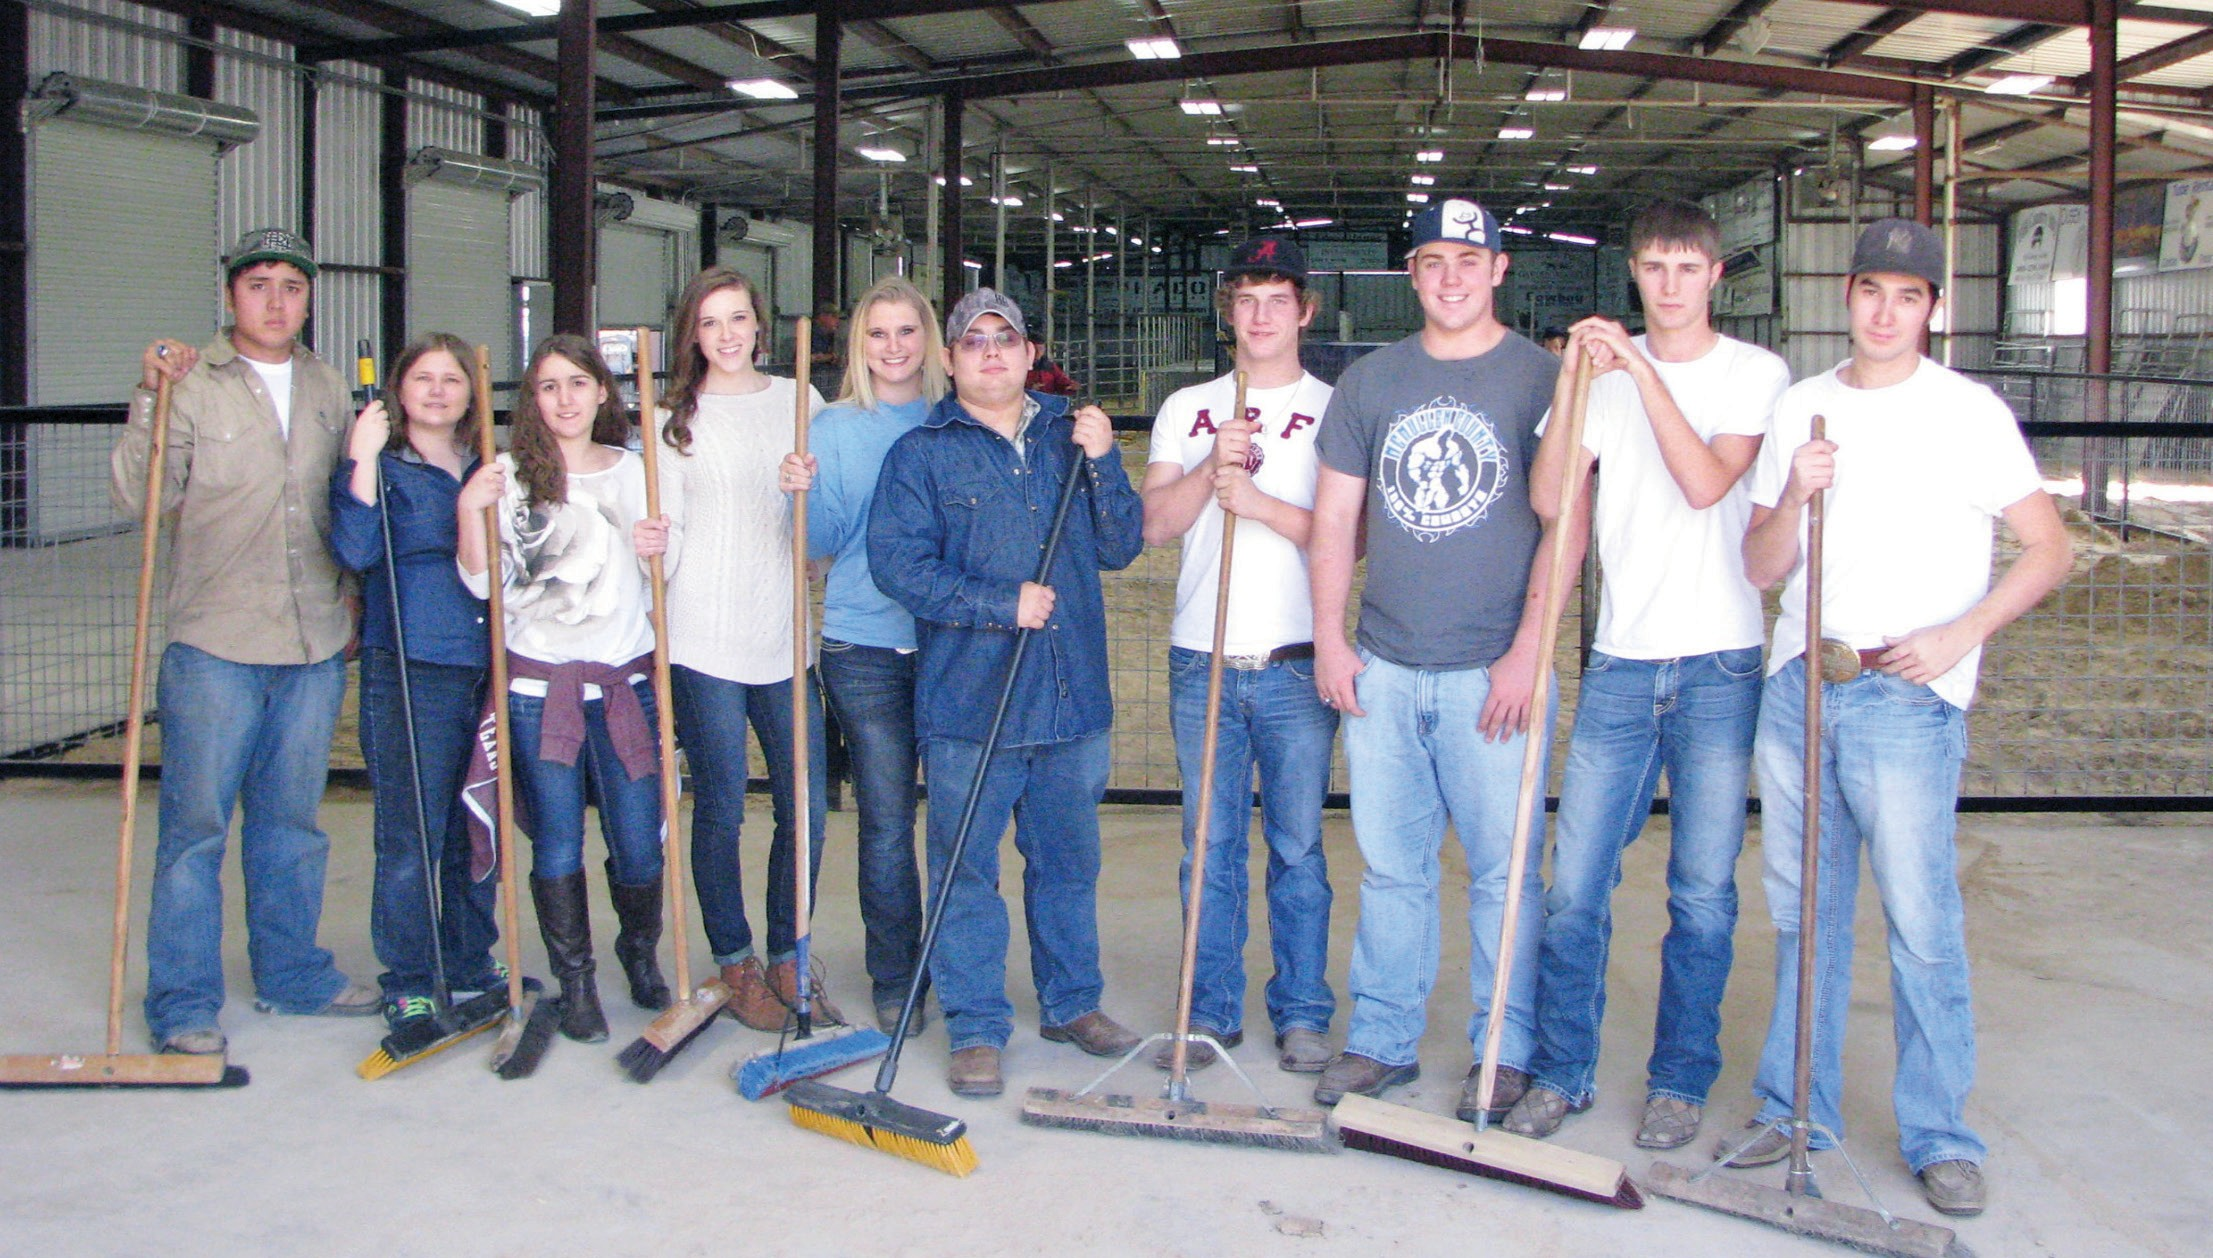 McMullen County high school seniors help to put the finishing touches on the new addition to the show barn in preparation for the McMullen County Jr. Livestock Show this weekend Jan. 24 and 25. The group of Tilden FFA members are Jimm Casas, Kaitylyn Fohn, Sarah White, Heather Gillin, Ashley Stover, Kye Maddox, Chad May, Trent Ruhmann, Clay Atkinson and Joaquin Cavazos.